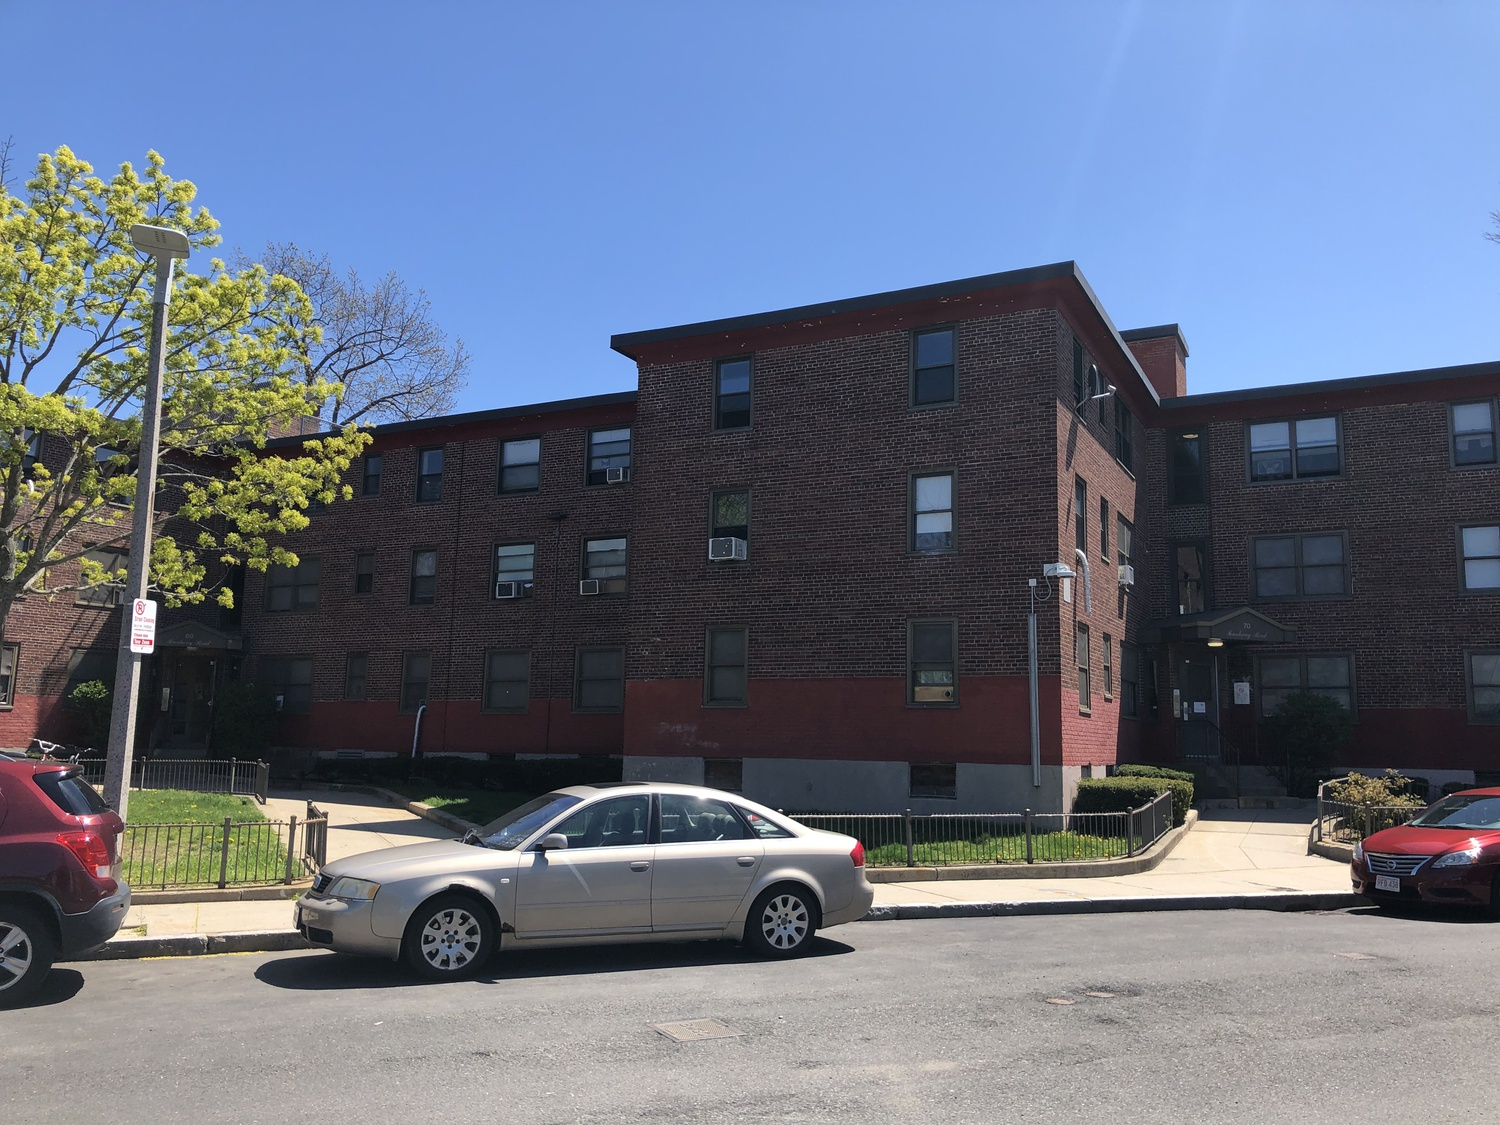 The Johnson family lived at 60 Brookway Road in Roslindale. Archdale, the development they called home, is a 281-unit public housing complex, where families pay 32% of their income toward rent.